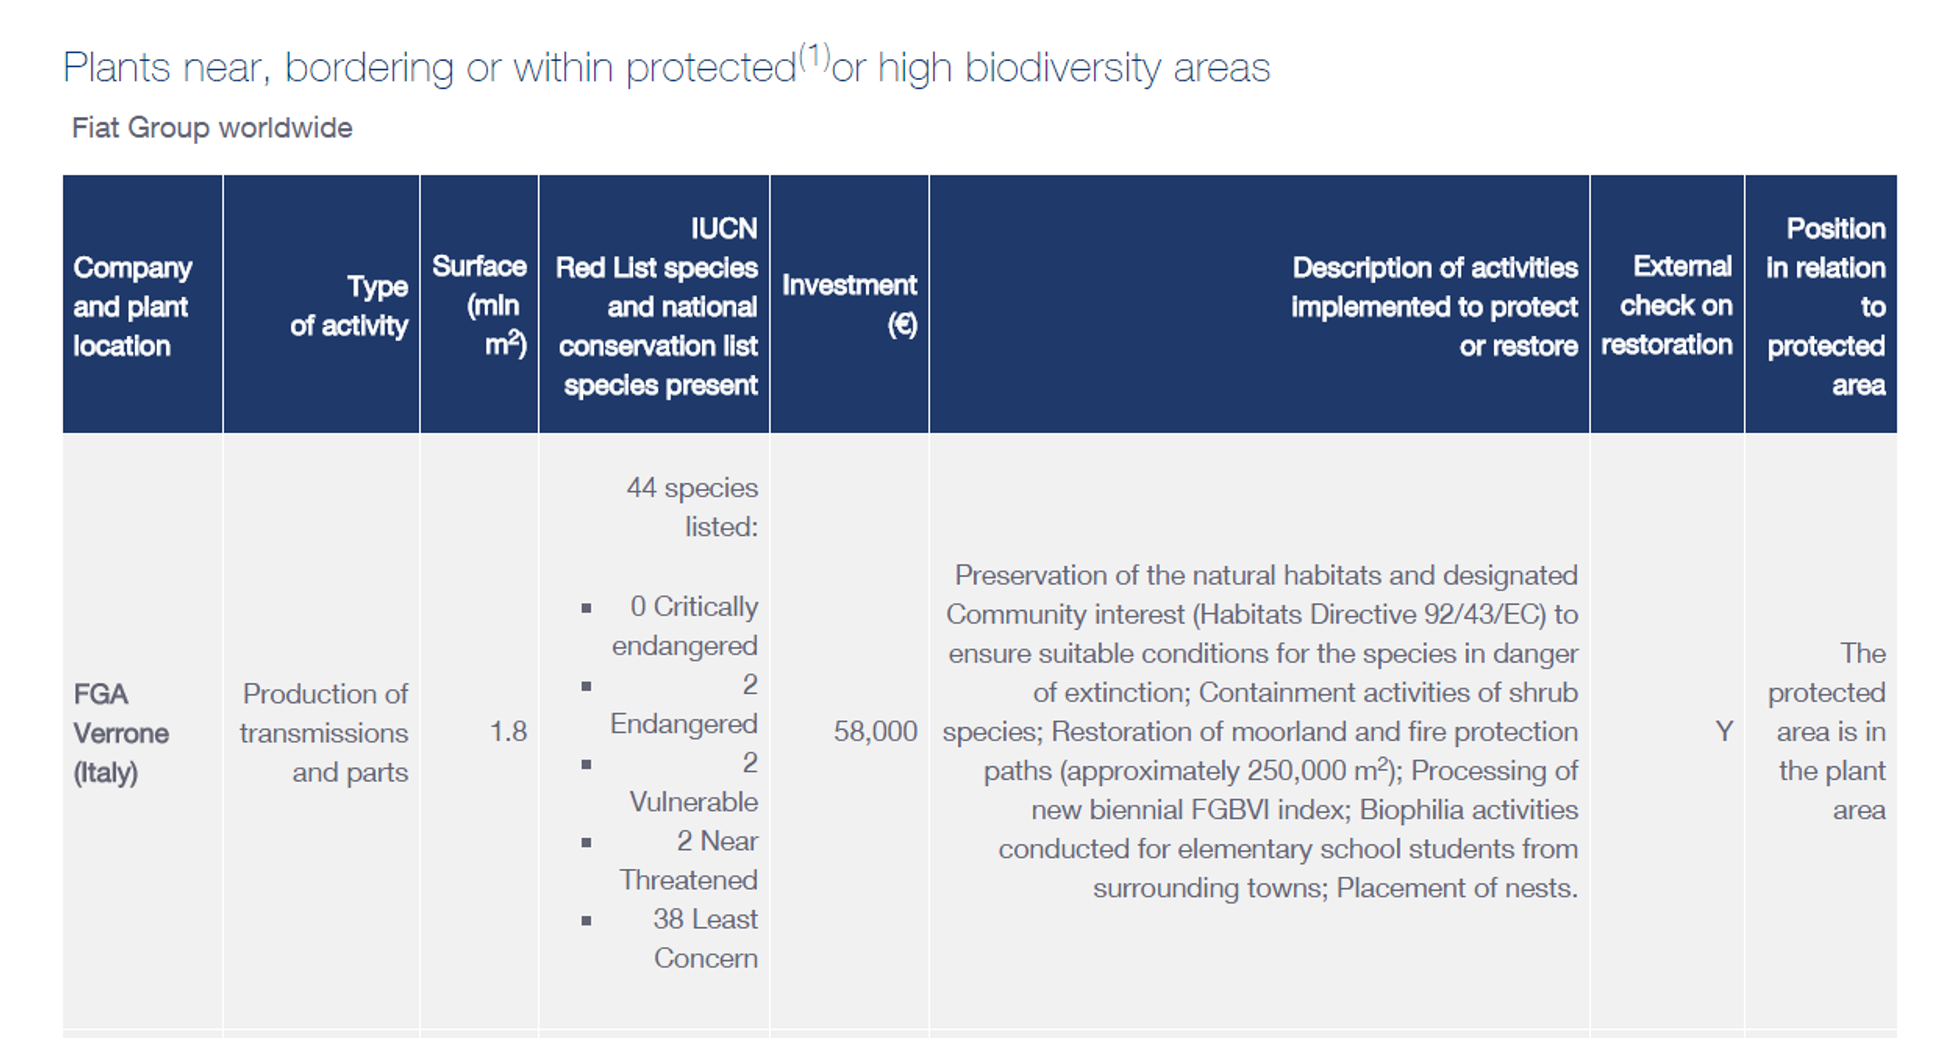 Plants near, bordering or within protected or high biodiversity areas. See text version below for more details.